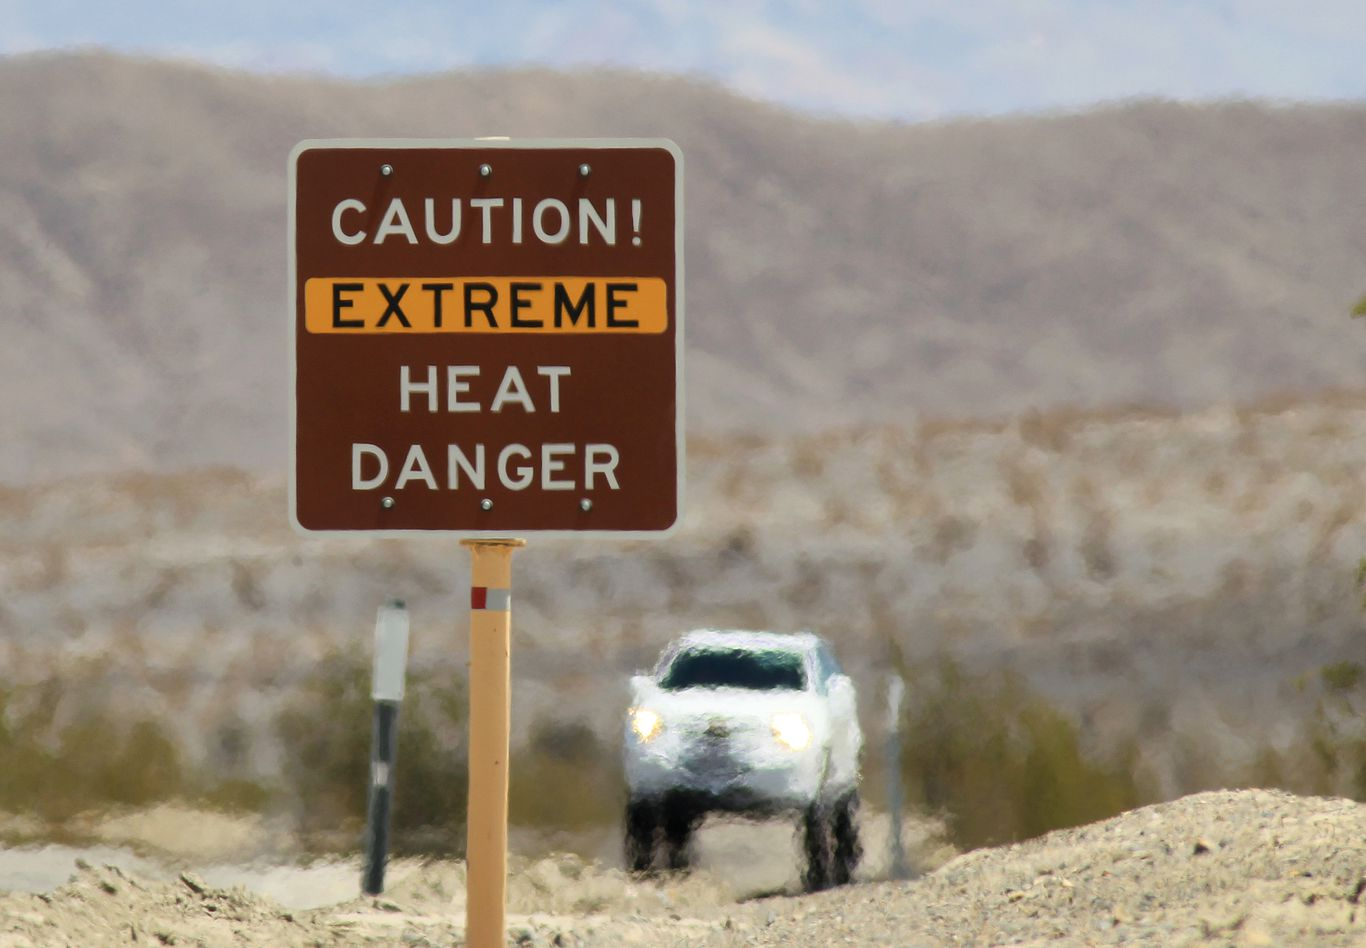 Death Valley hits 130 degrees as temperature records fall across California